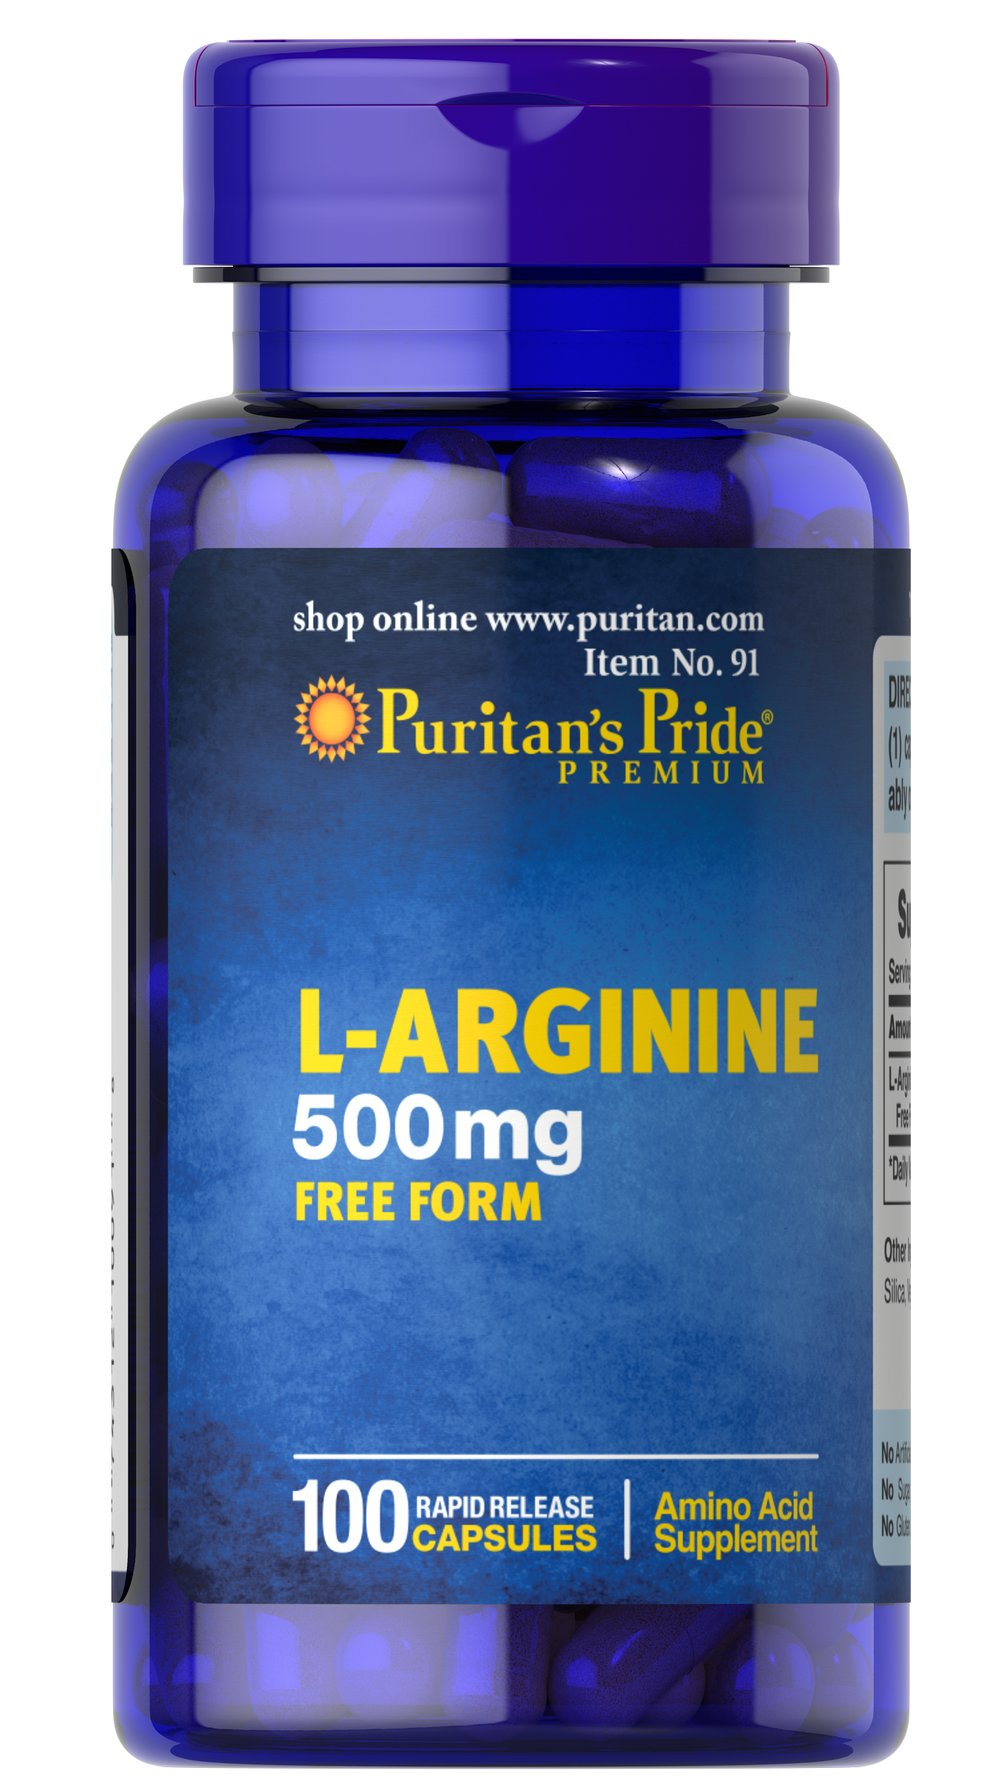 L-Arginine 500 mg <p>Arginine is one of 20 amino acids, the building blocks of protein.** Arginine can  serve as a source of energy, and is involved in various pathways throughout the body.** Arginine supports the effect of exercise and is one of the most important amino acids involved in immune function.** Adults can take one caplet daily. </p> 100 Capsules 500 mg $8.39